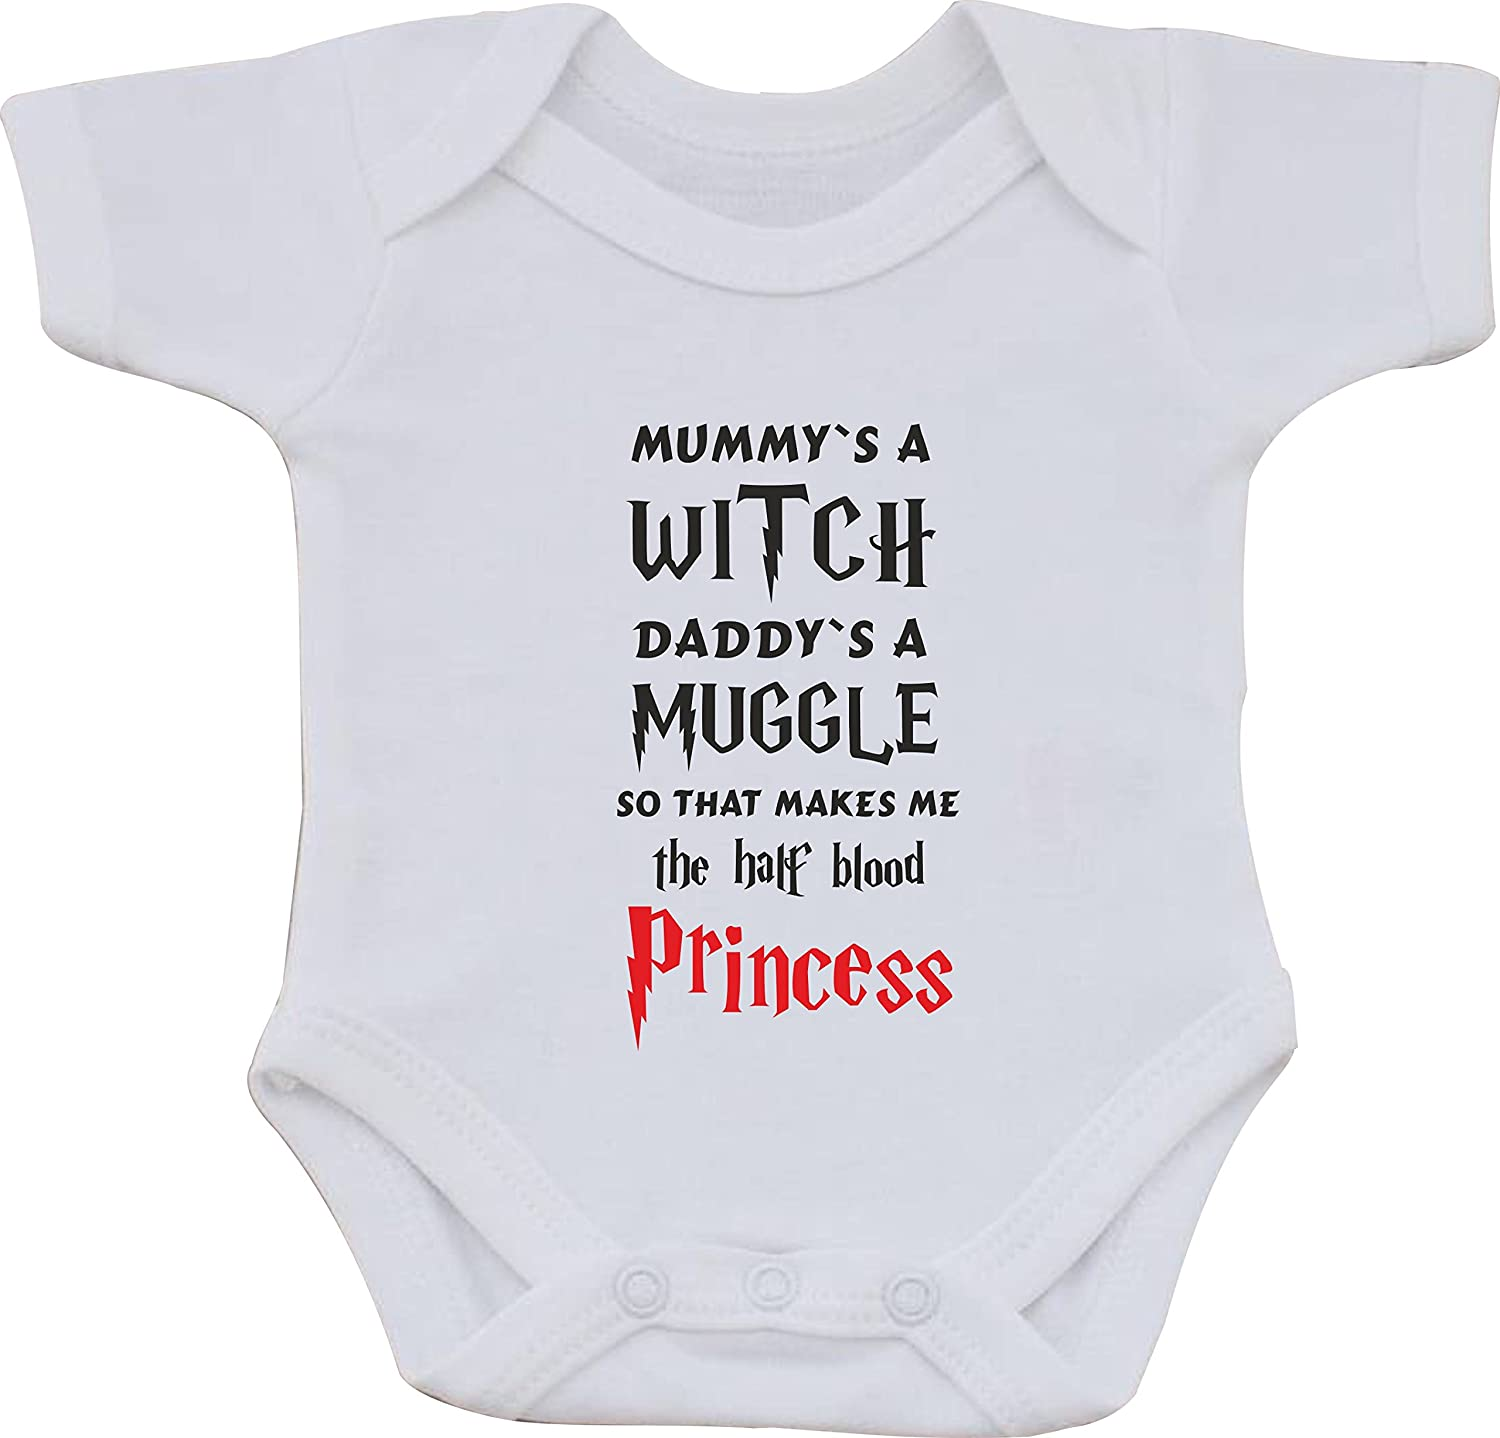 magic moments Mummys A Witch Daddys A Muggle So That Makes Me The Half Blood Princess Harry Potter Full Color Funny Sublimation White Baby Vest